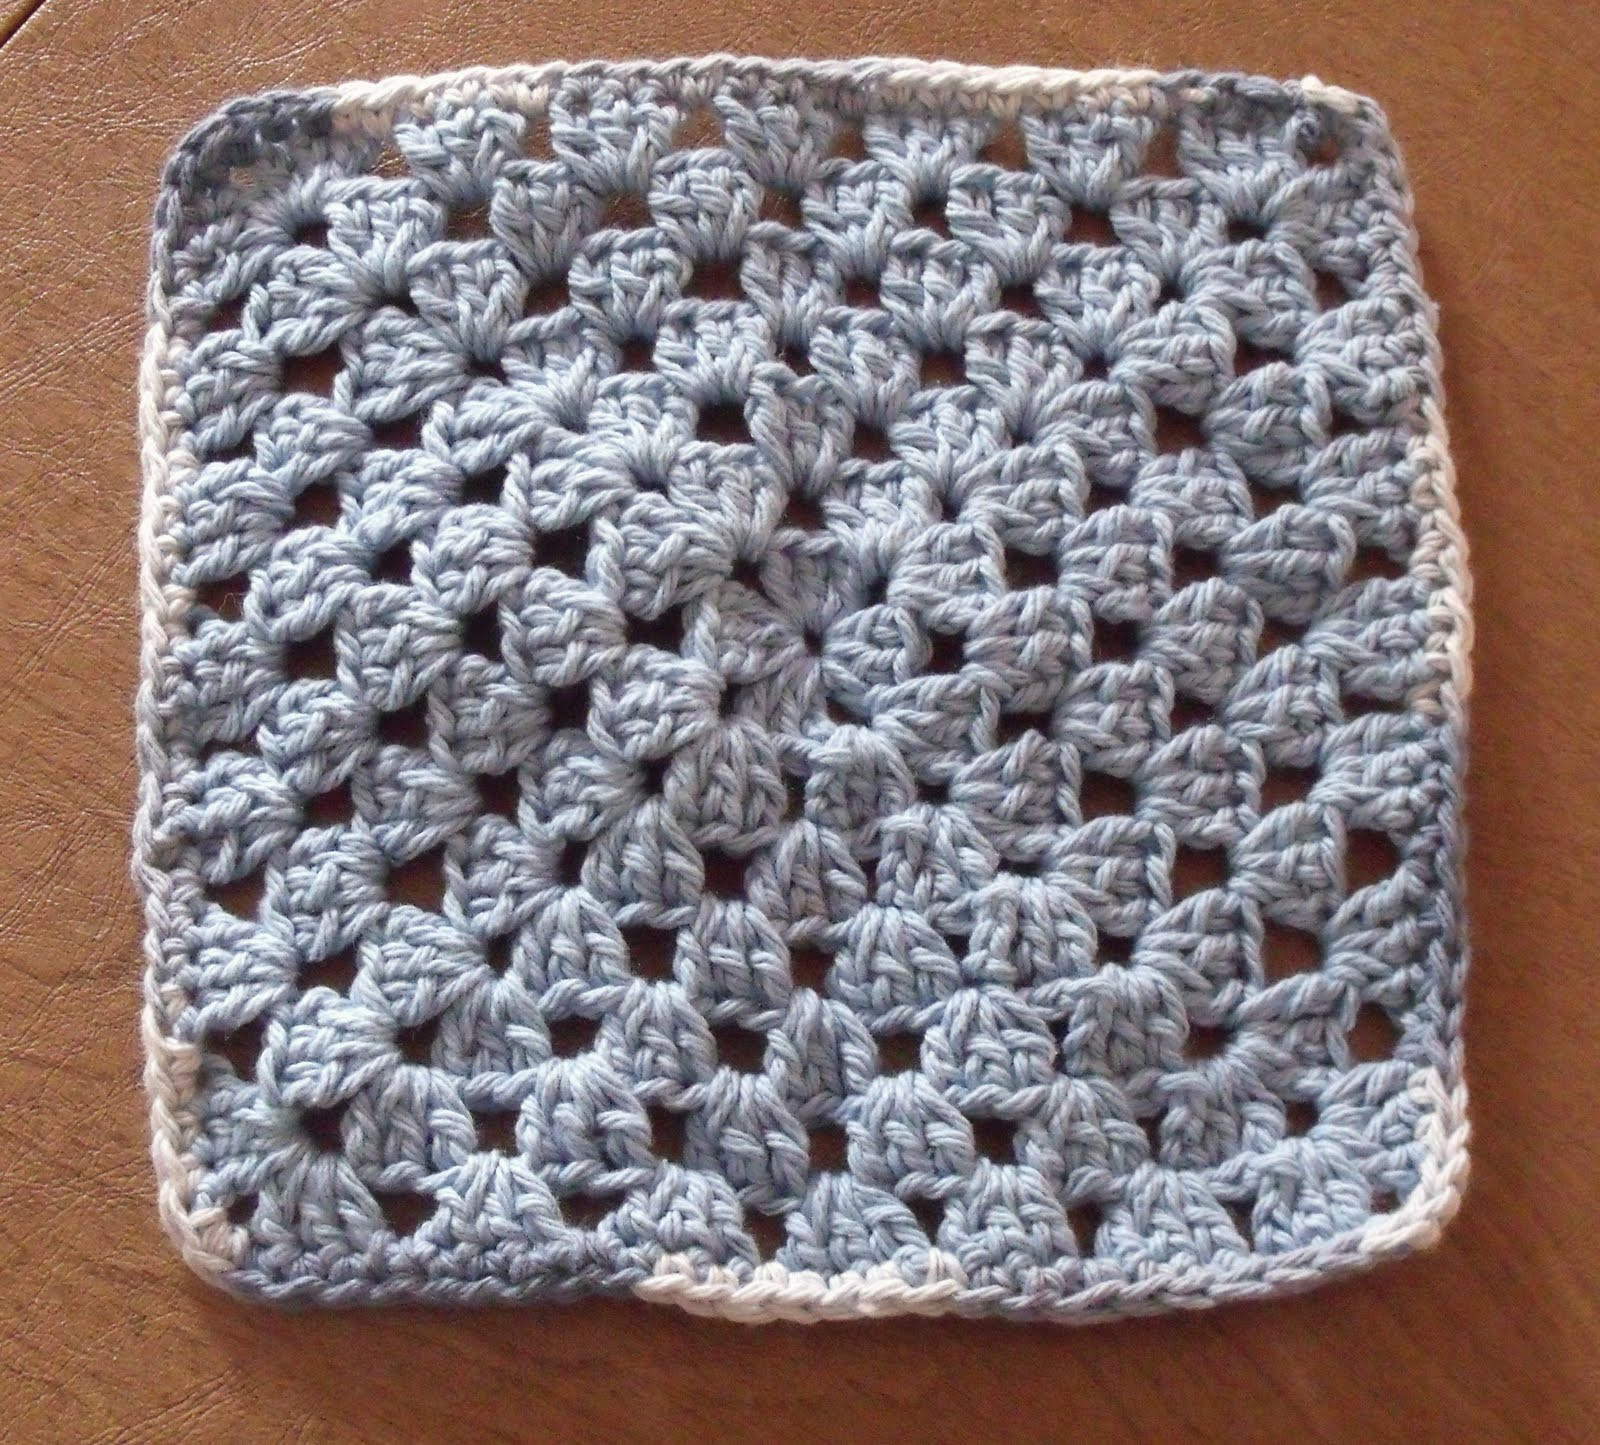 Best Of Baking Crocheting and Sewing Oh My Crochet Granny Free Crochet Granny Square Patterns Of Top 47 Pics Free Crochet Granny Square Patterns